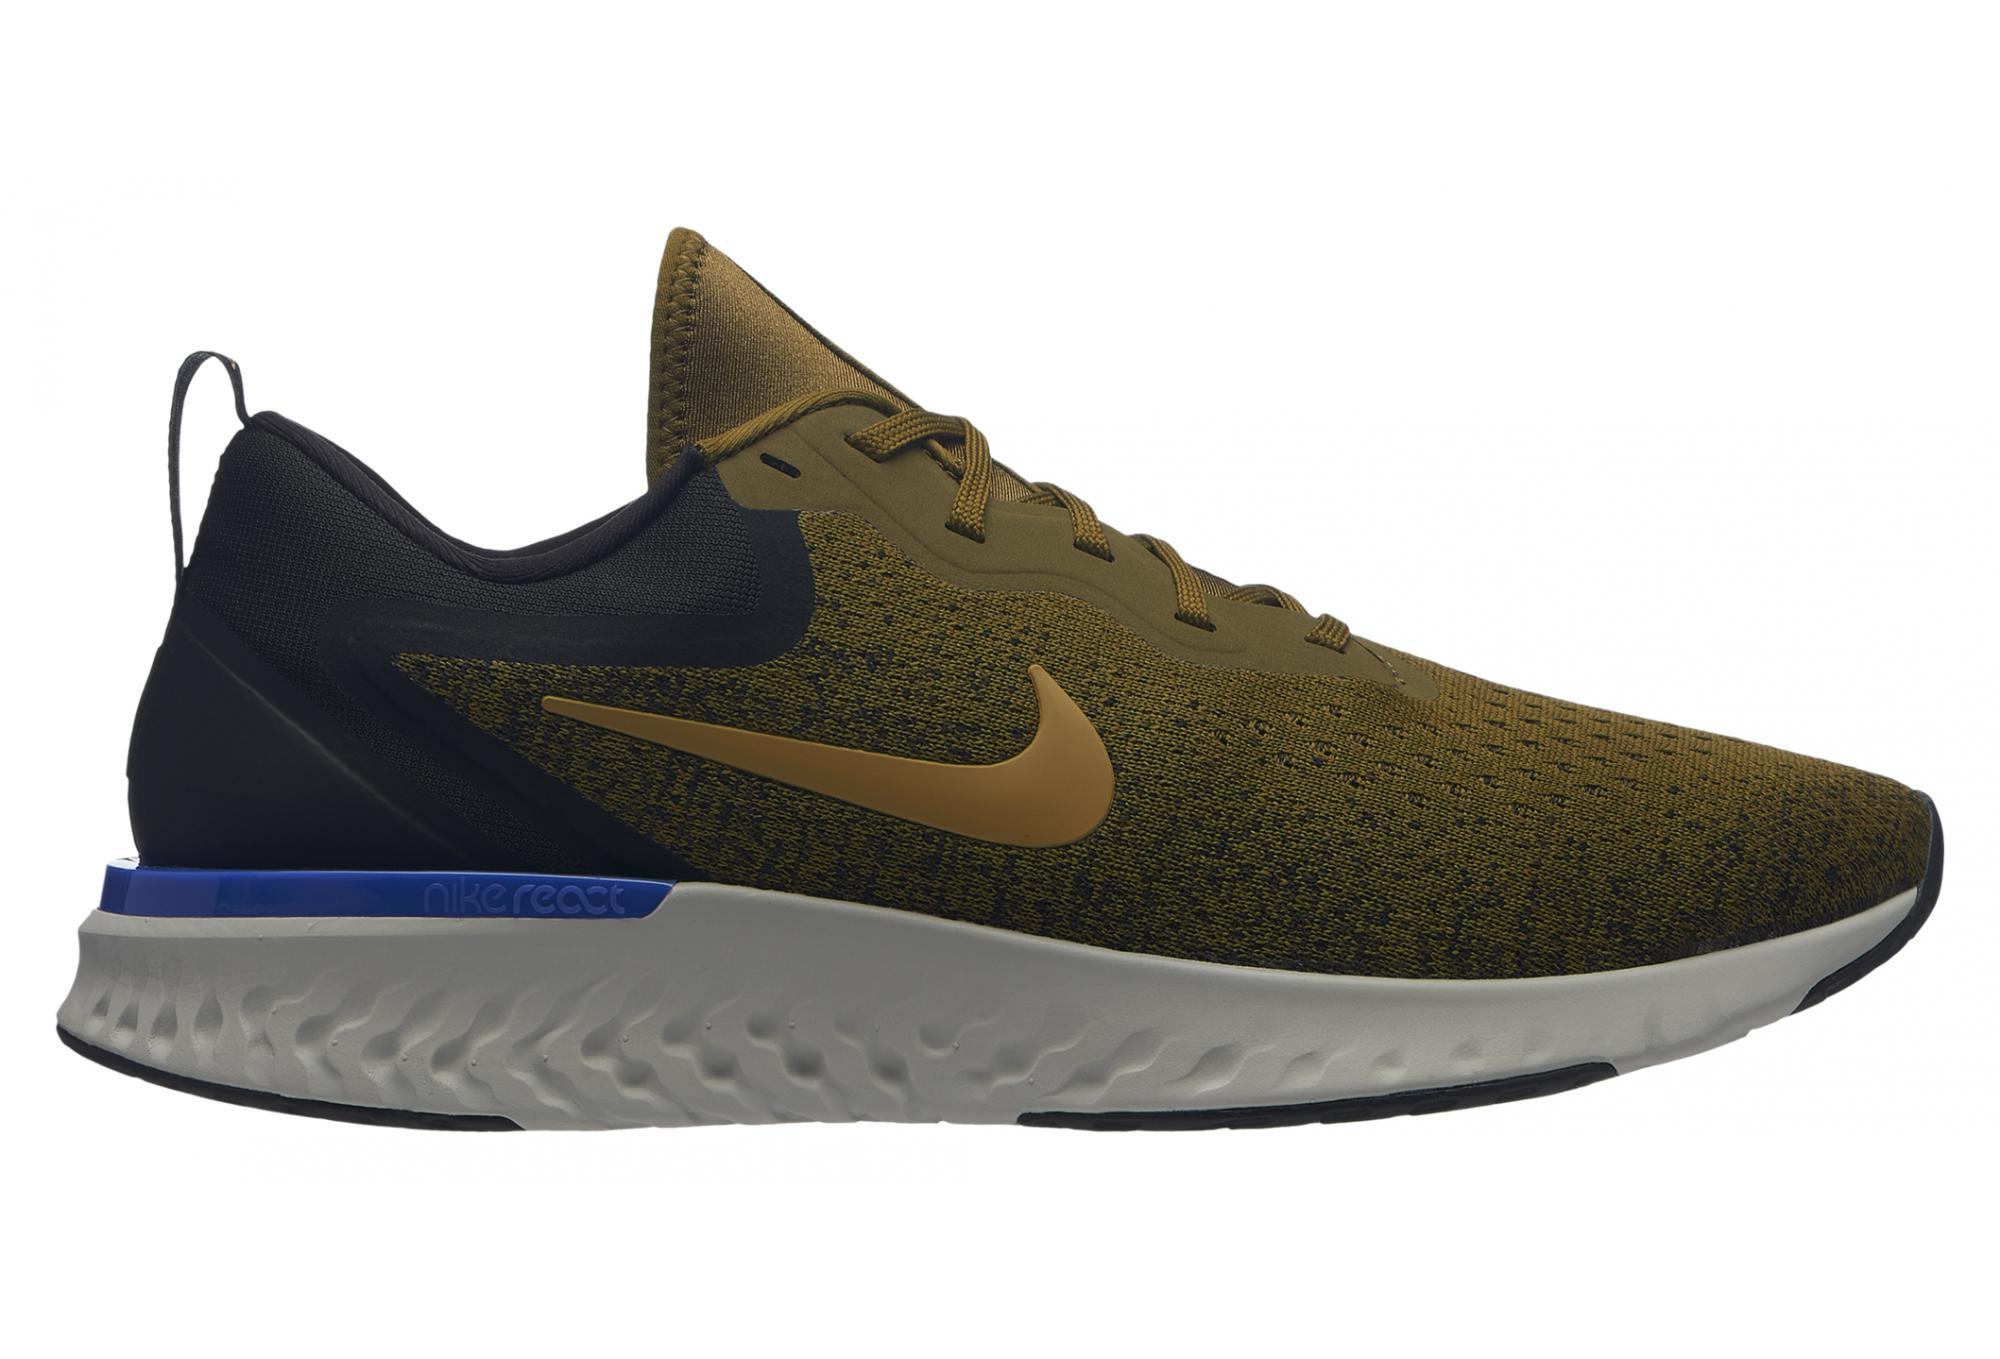 714dc3b6912e0b Nike Odyssey React Shoes Khaki Men | Alltricks.com